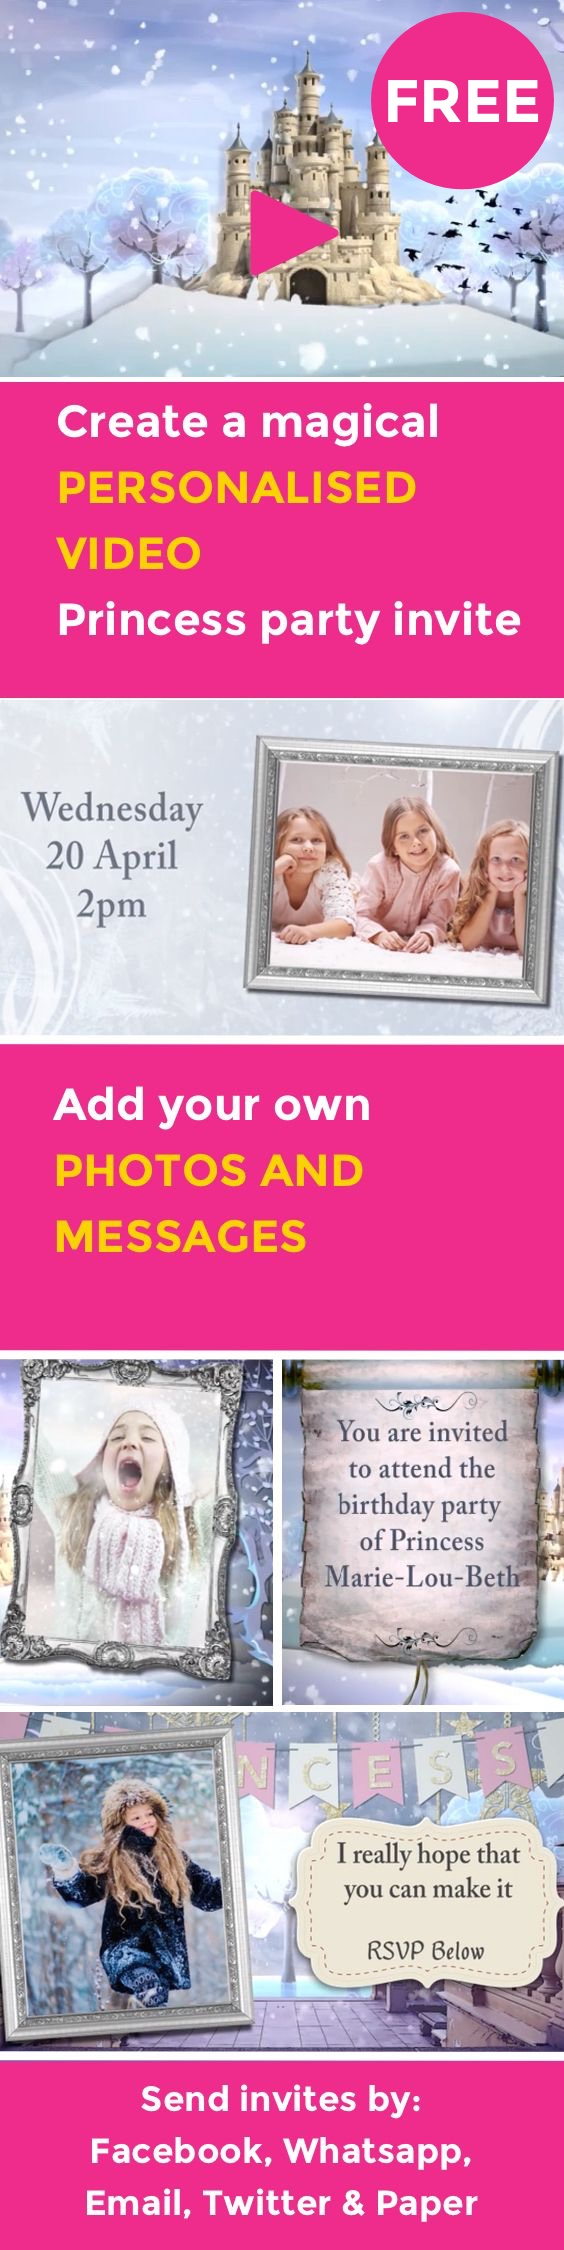 Create A Magical FREE Video Party Invitation For Your Princess Send By Facebook Whatsapp SMS Email Or Paper